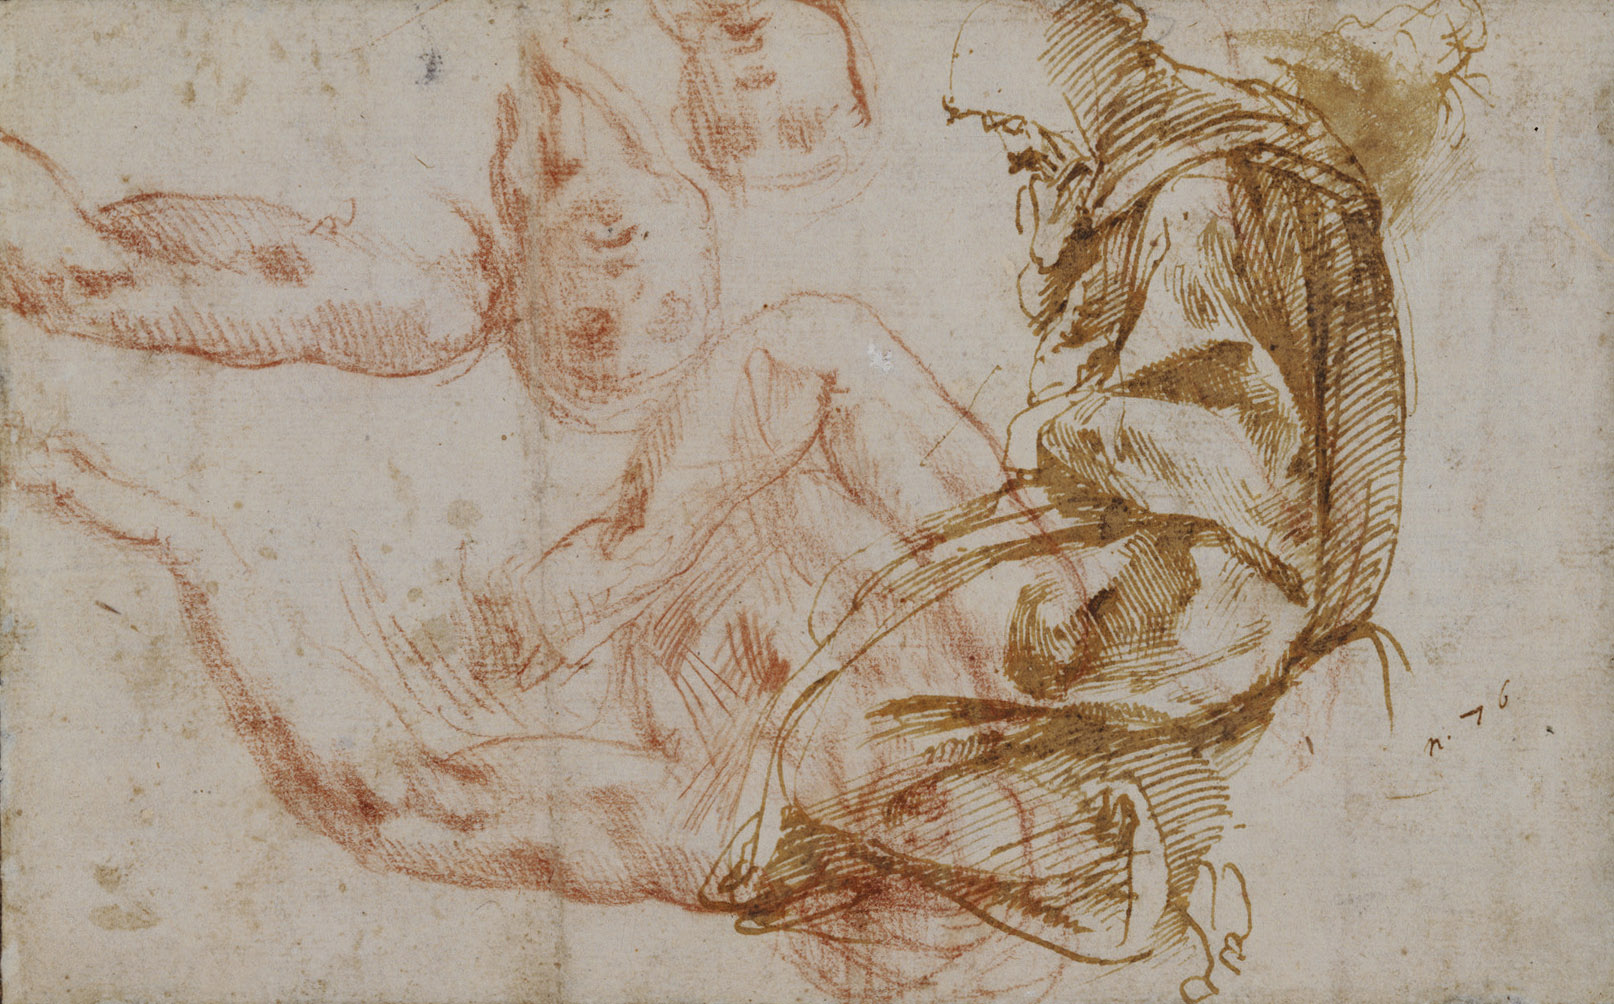 Michelangelo Buonarroti -Drawing -kneeling figure.jpg